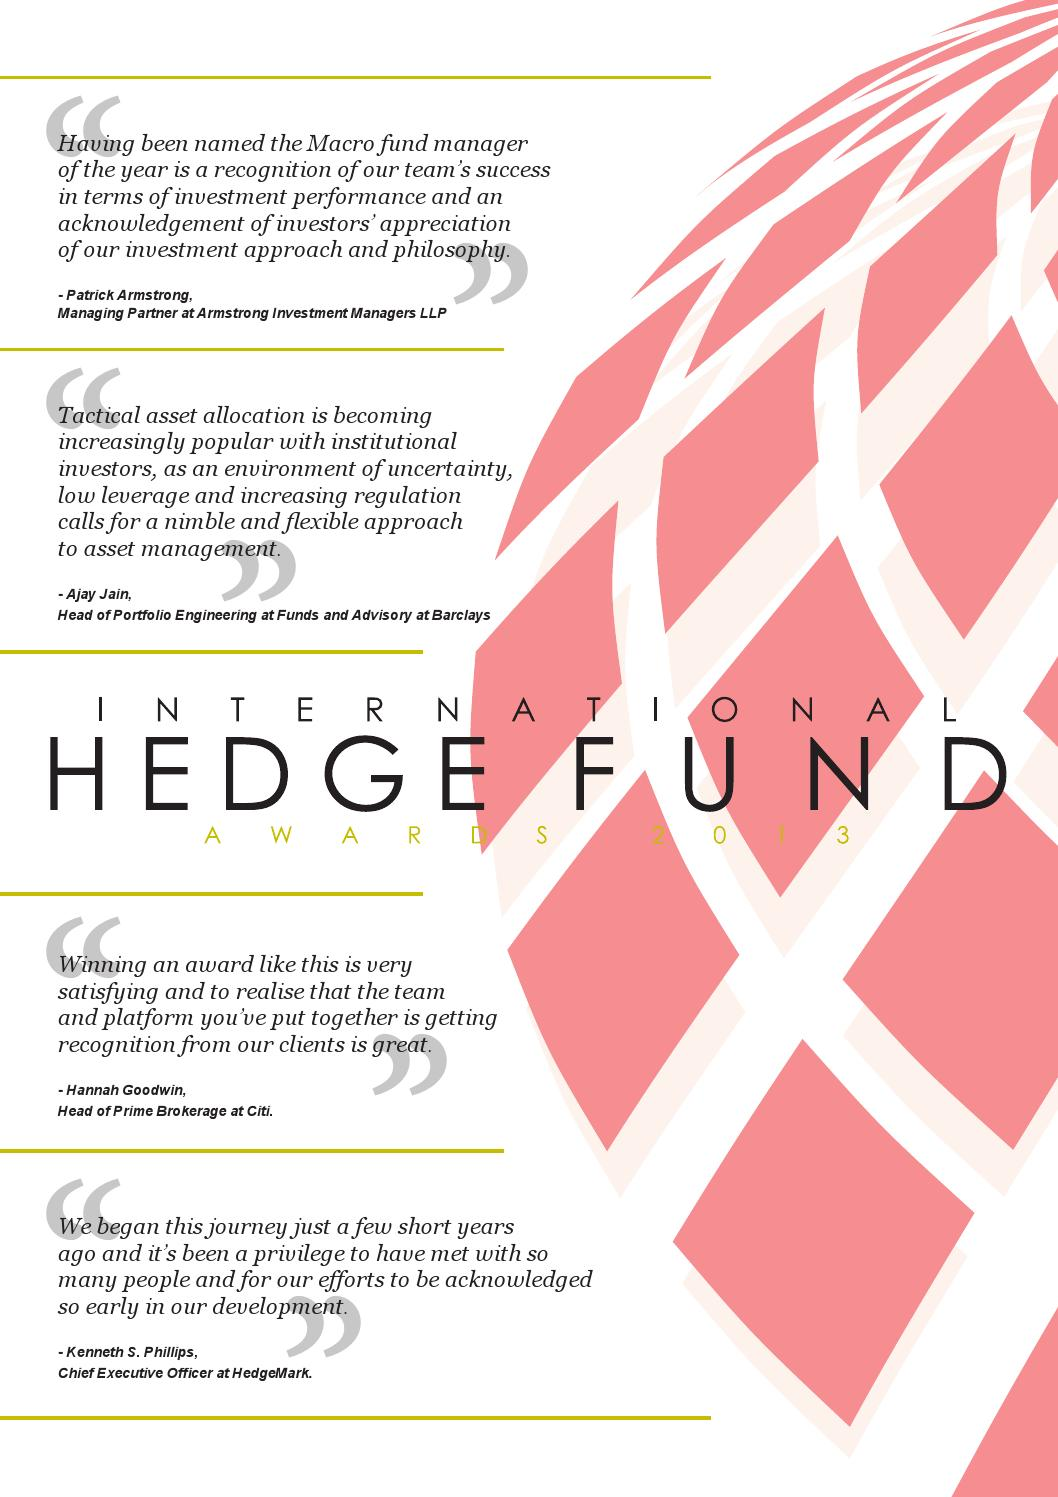 Hedge fund awards 2013